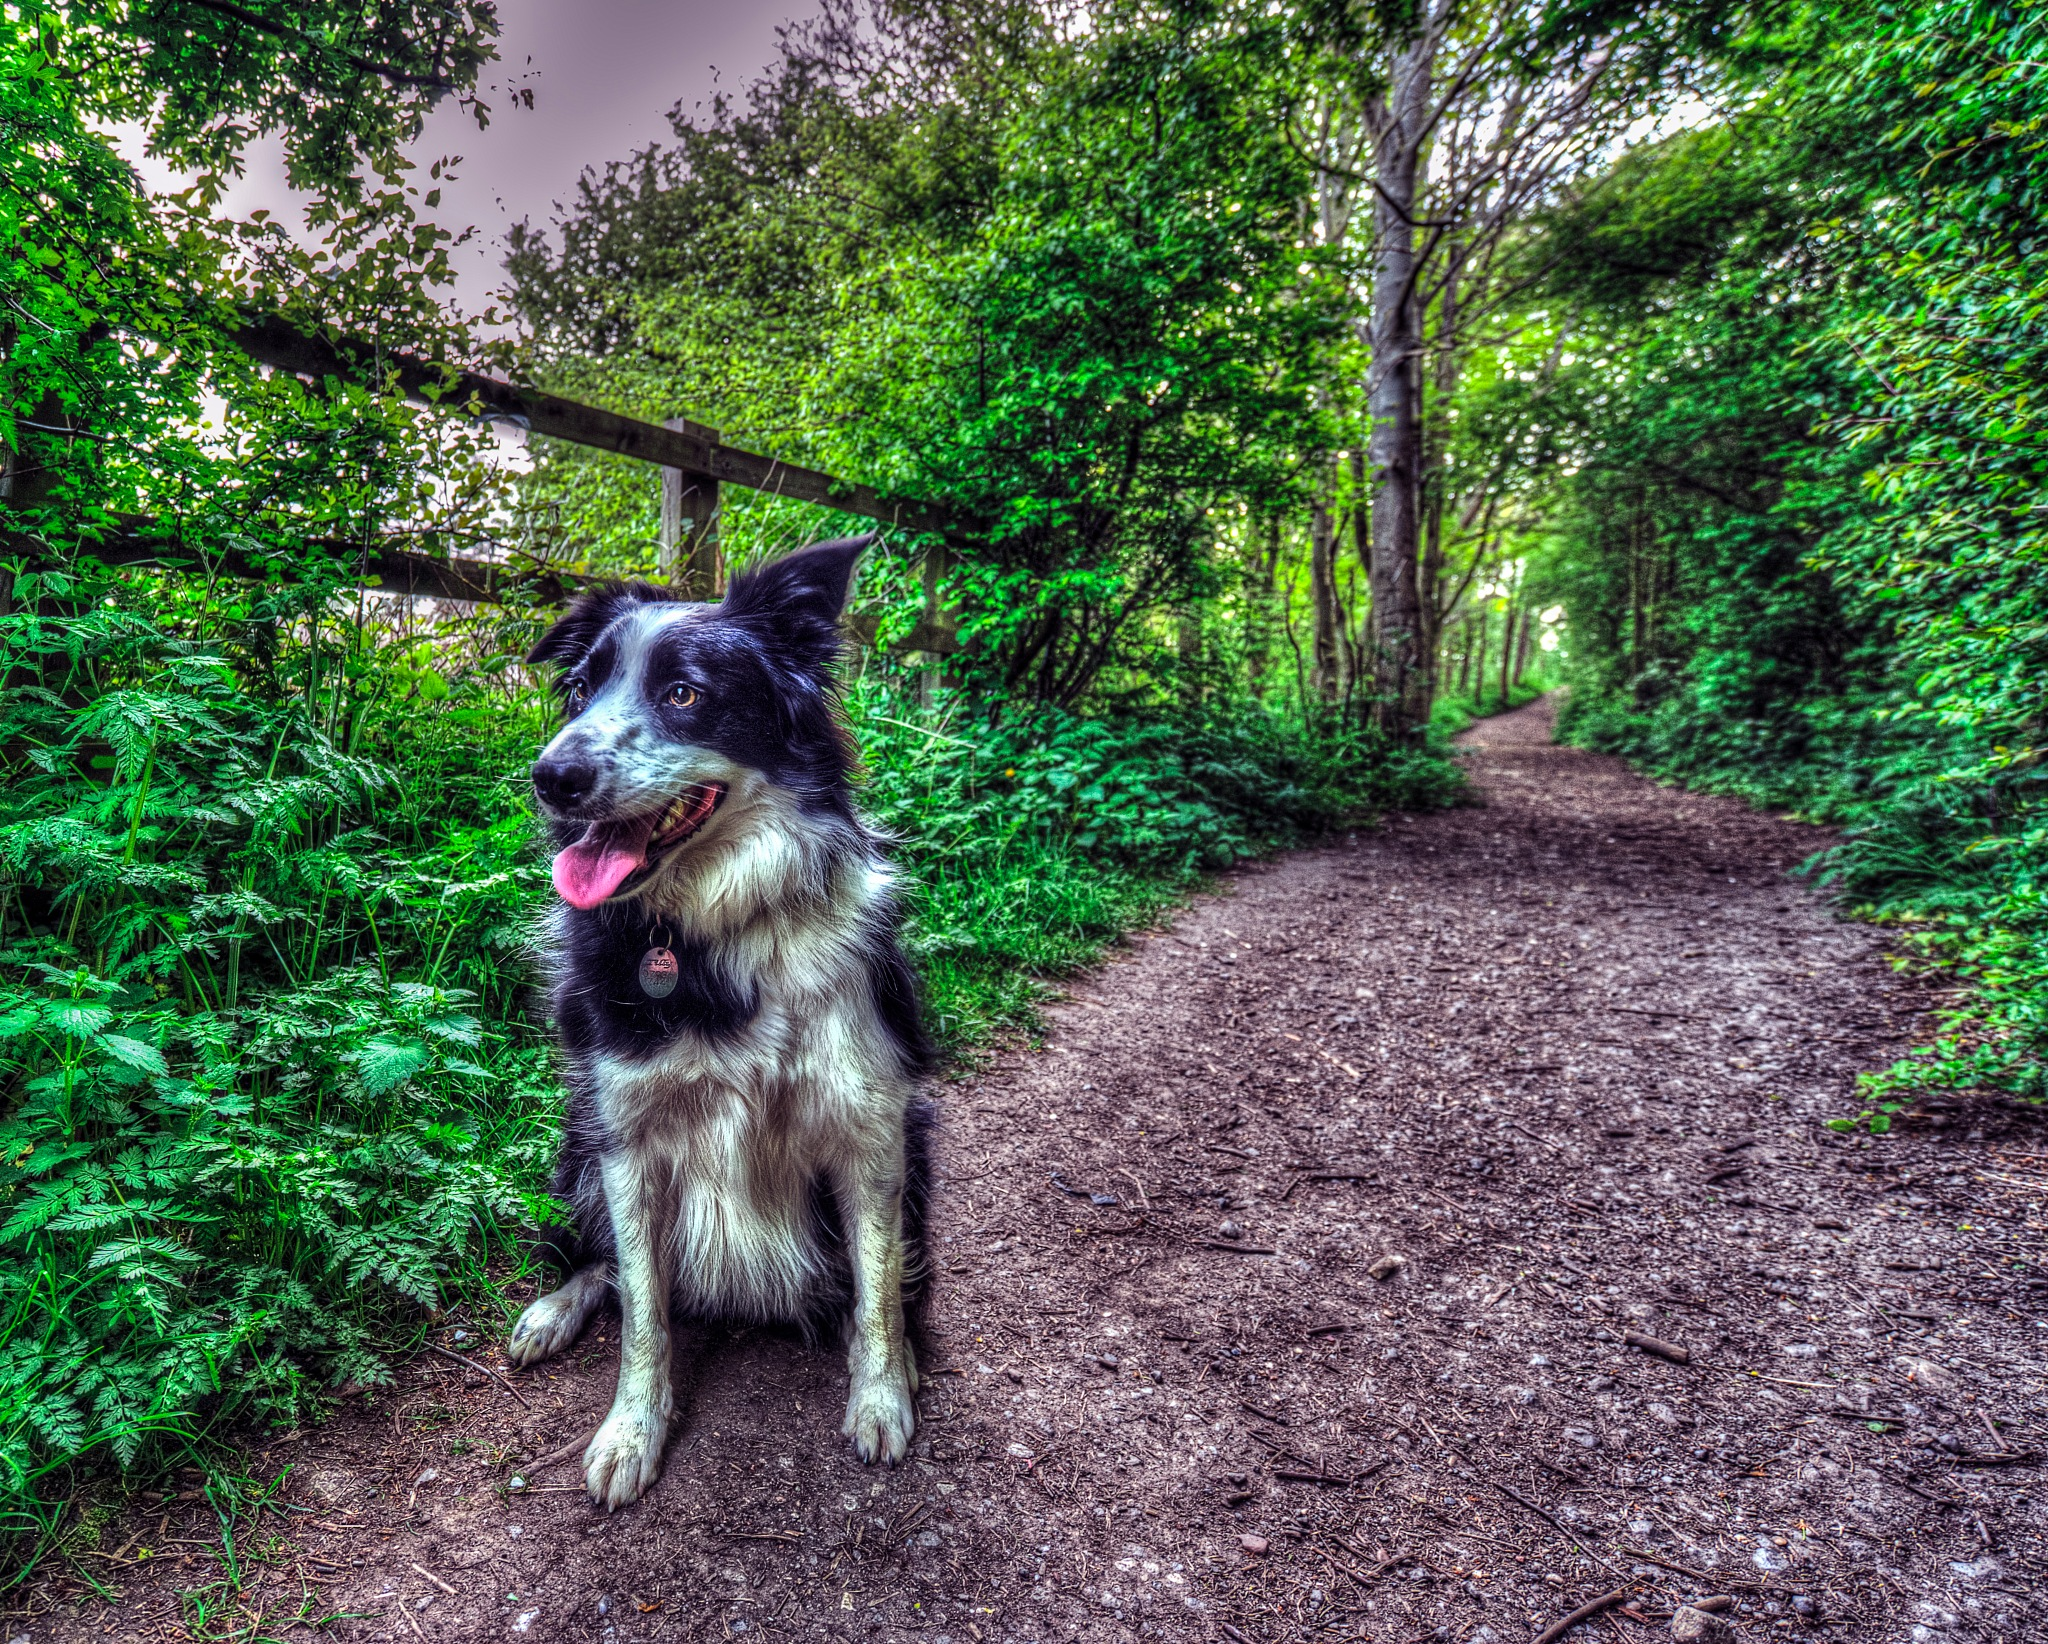 Lassie by mark fisher